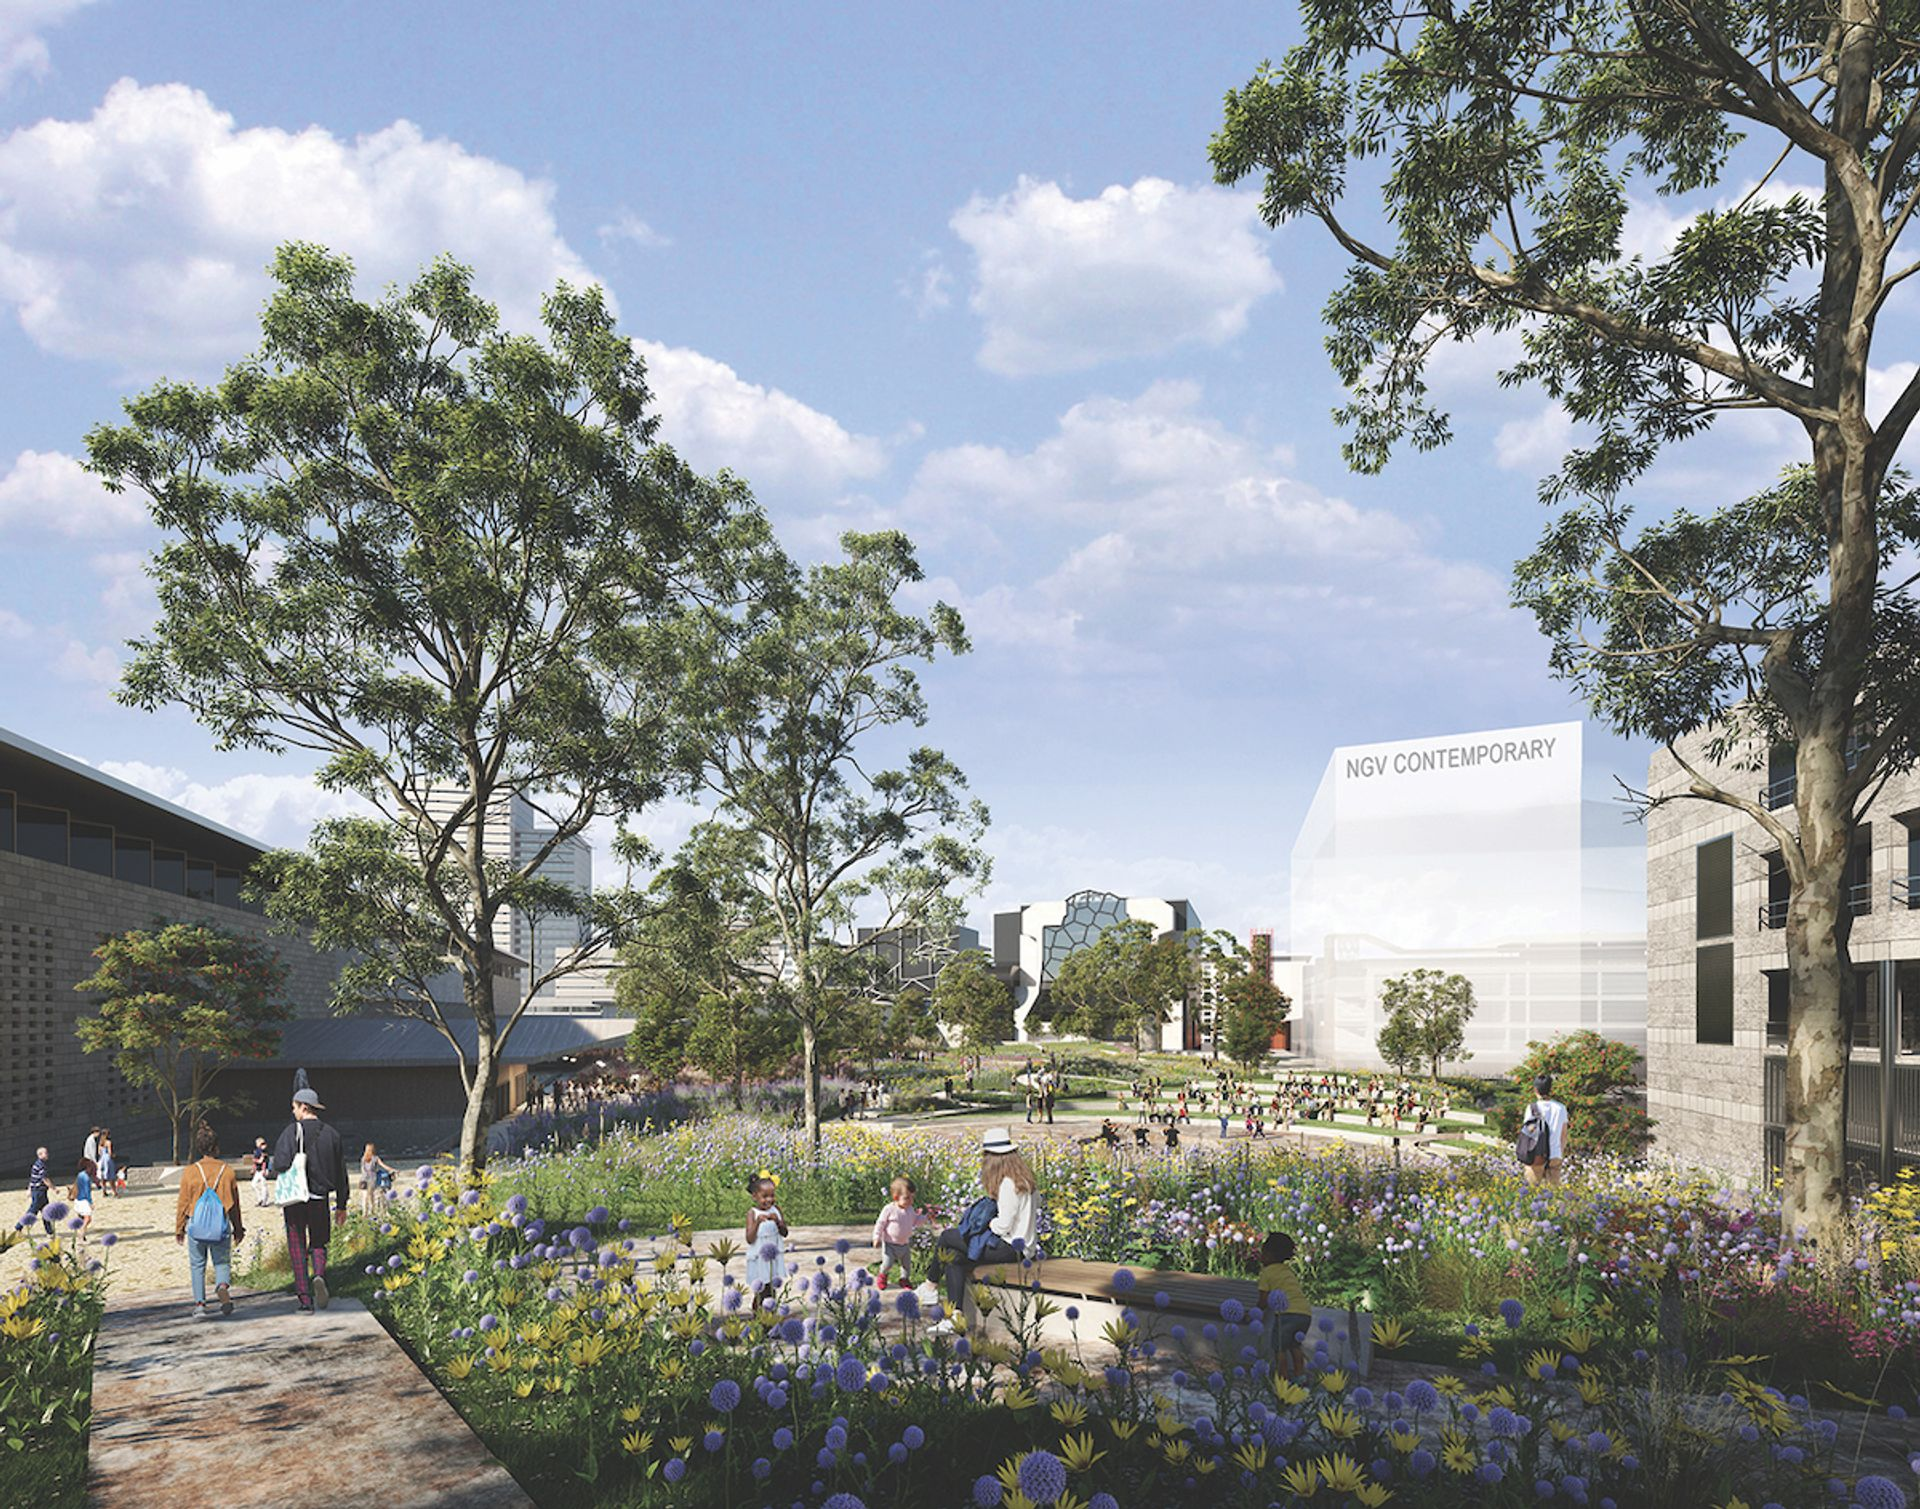 A proposed public garden will join the NGV Contemporary and the NGV International